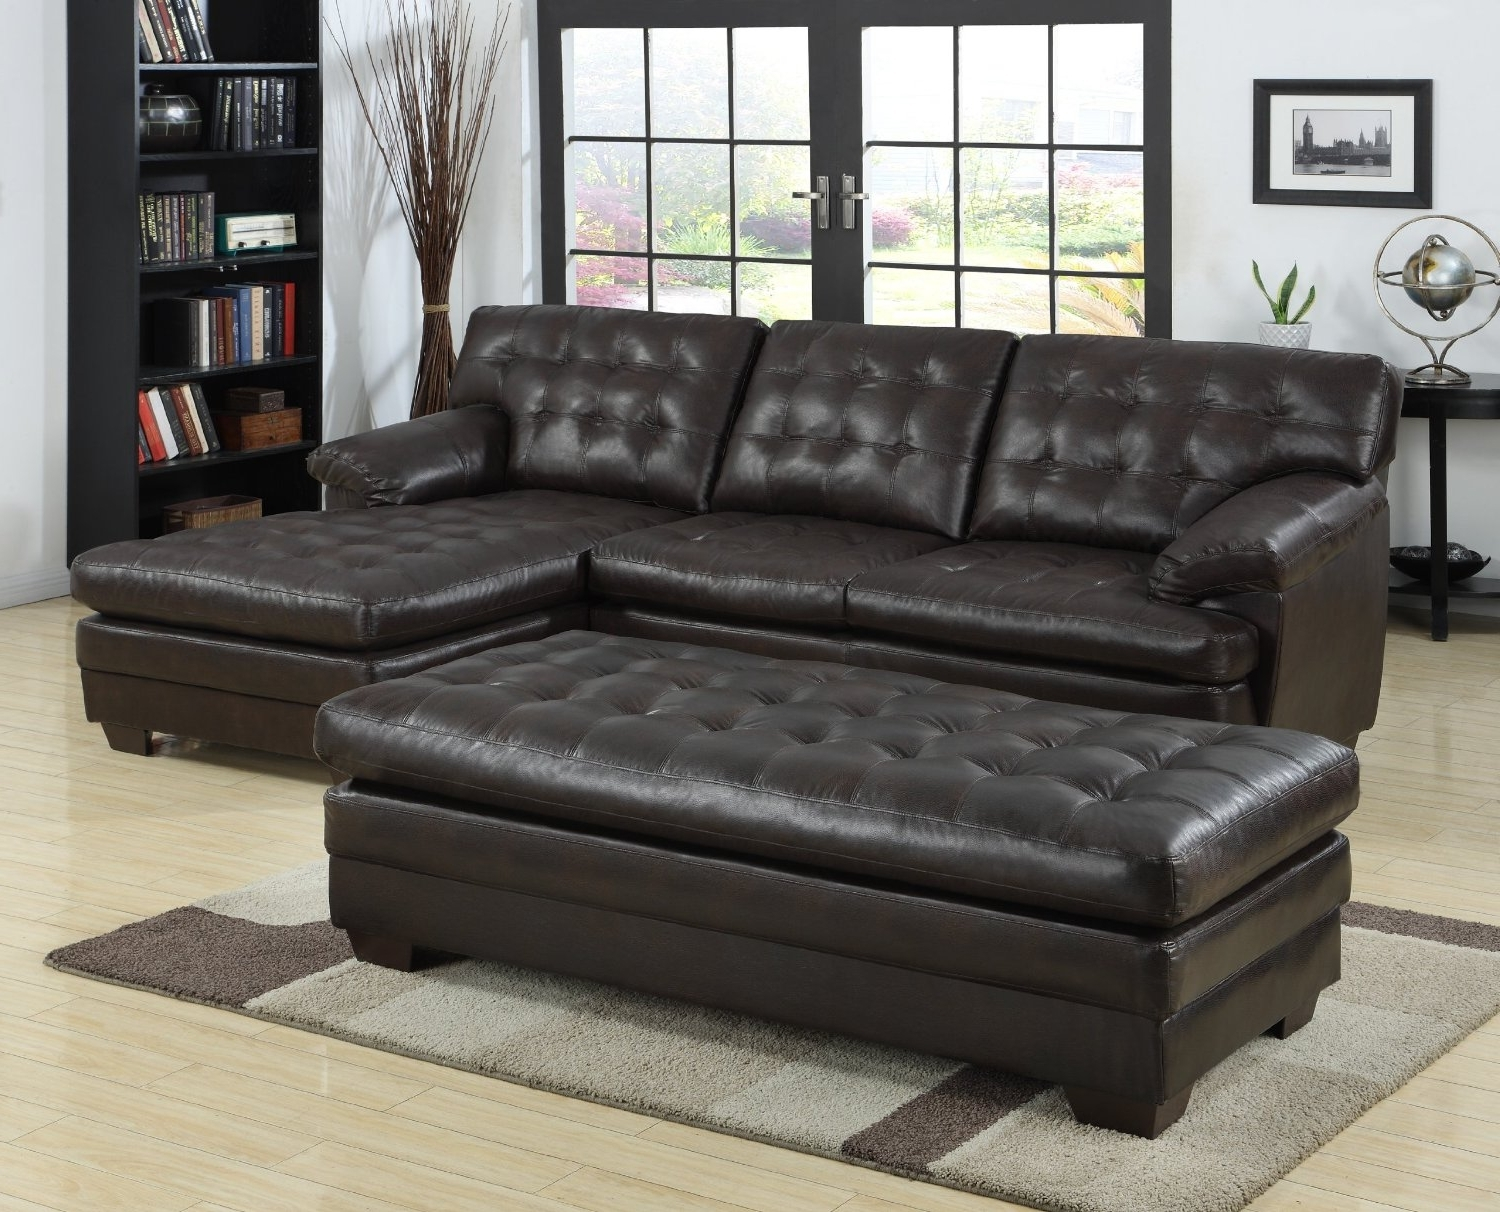 Well Liked Black Leather Sectional With Chaise Sectional Sofas With Recliners Pertaining To Leather Sectionals With Chaise Lounge (View 8 of 15)